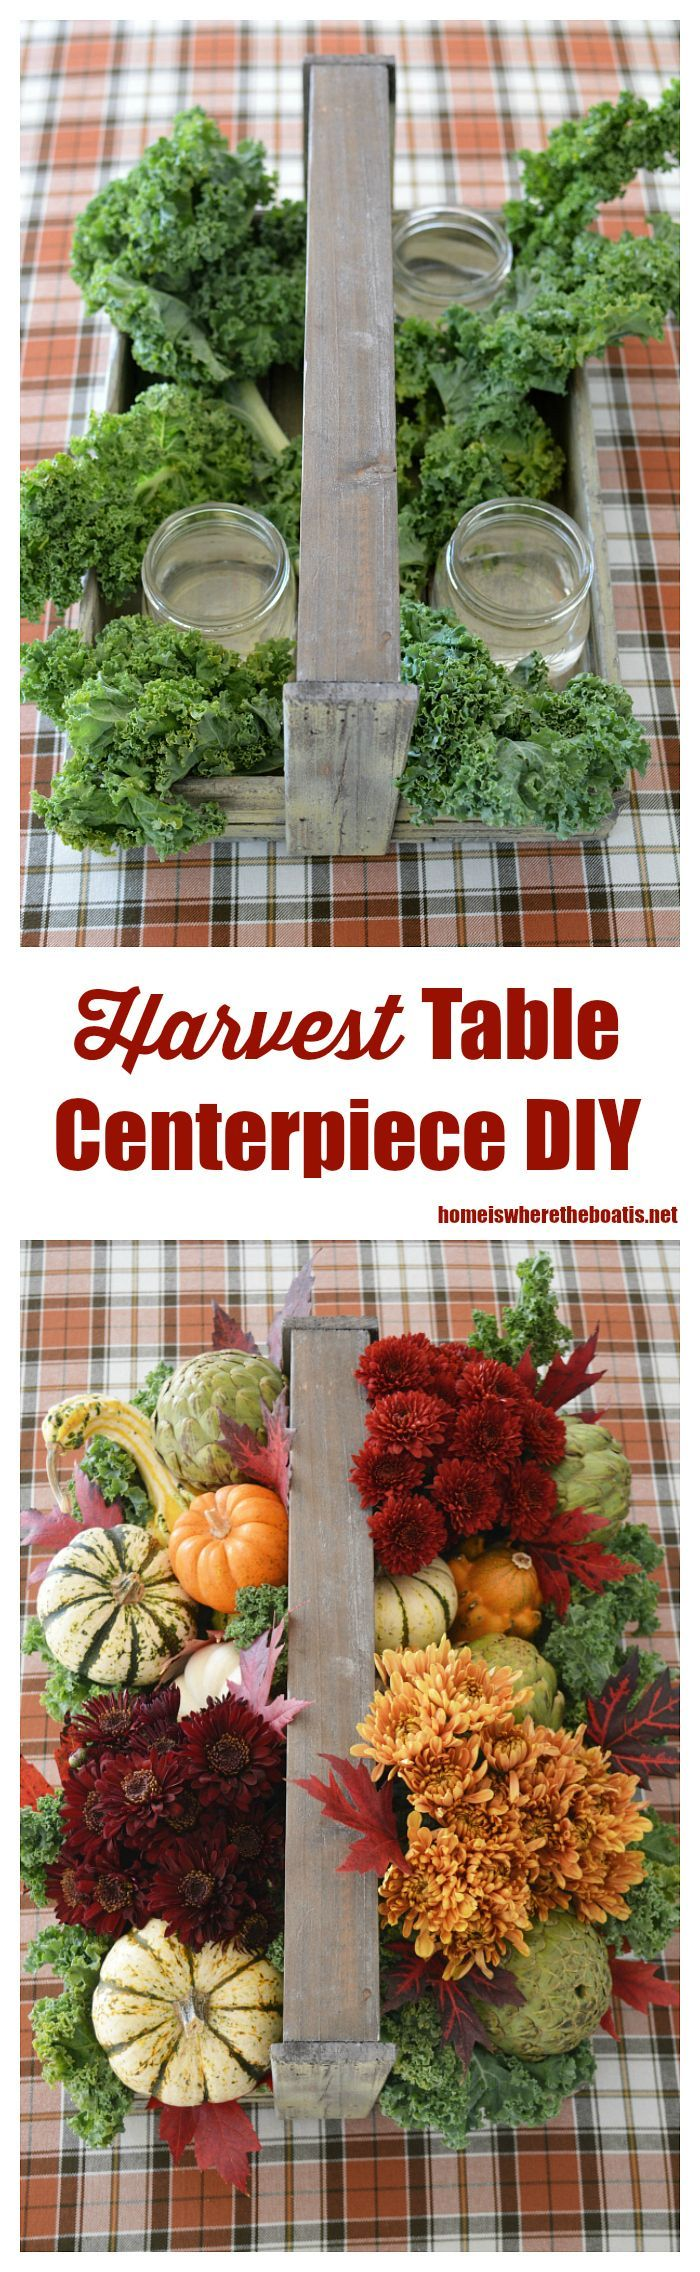 DIY Rustic harvest table centerpiece with veggies, pumpkins and flowers for fall or Thanksgiving | homeiswheretheboatis.net